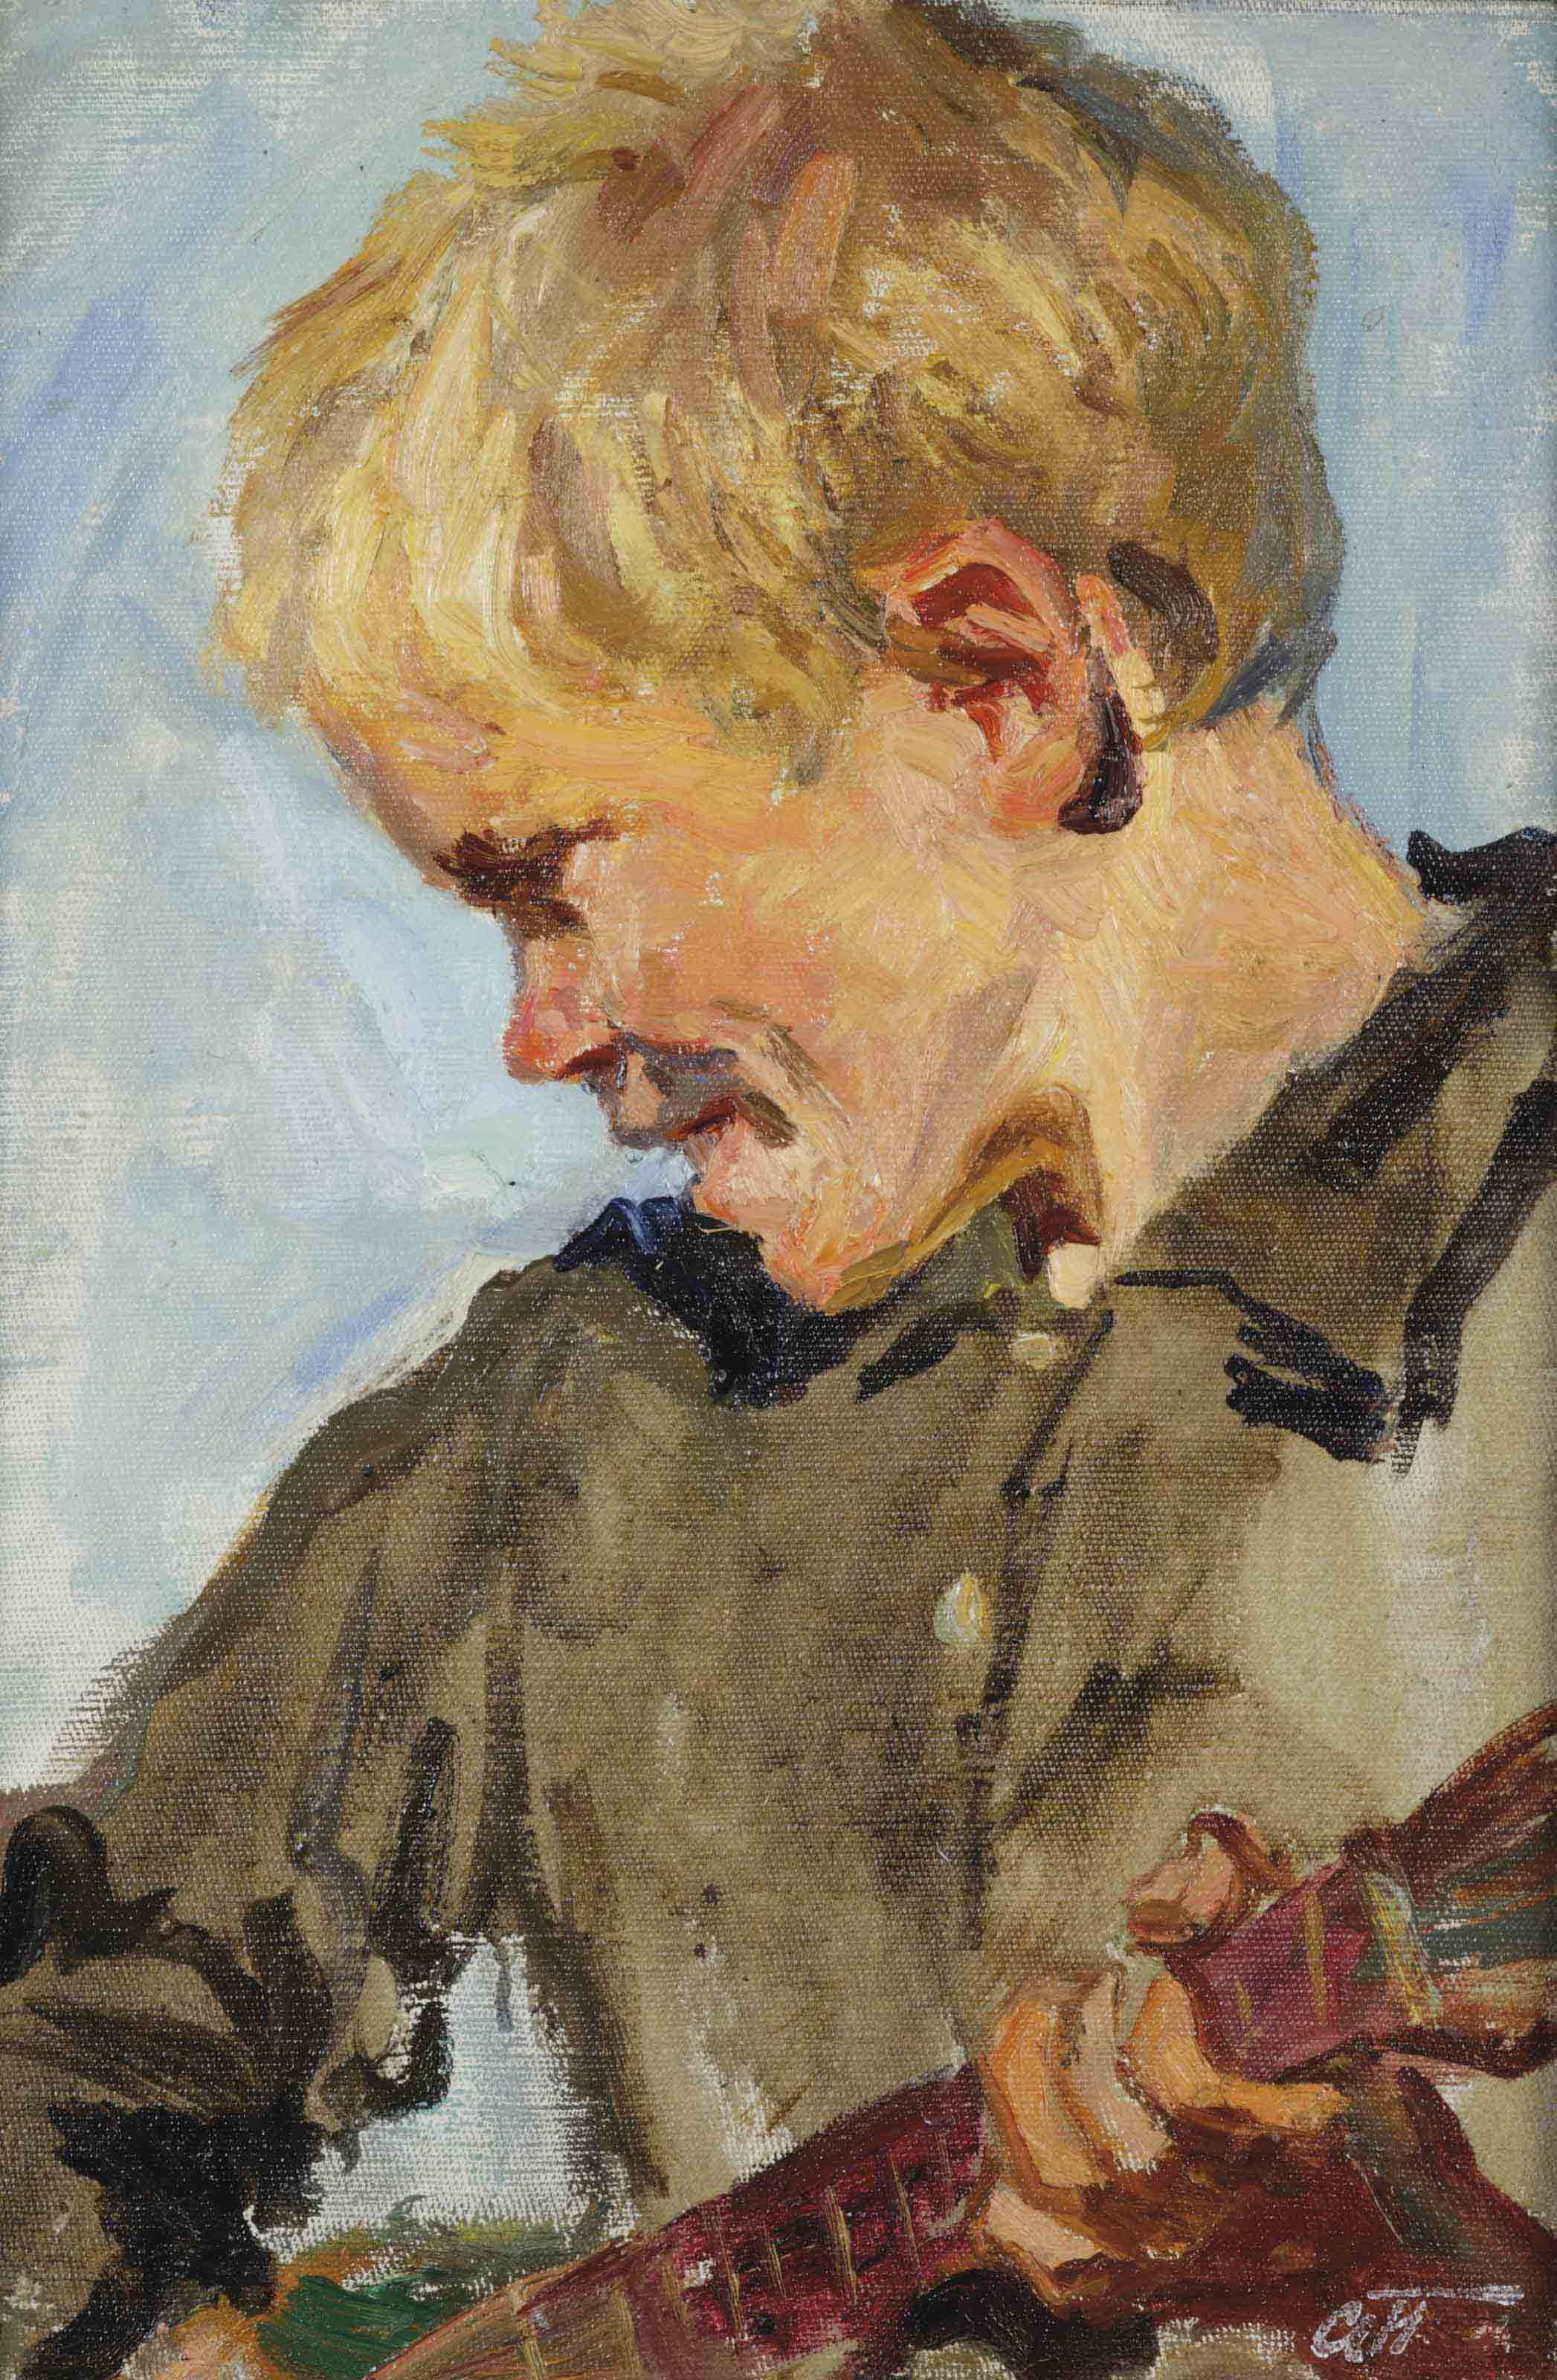 Study for 'The Fair': A boy playing the balalaika